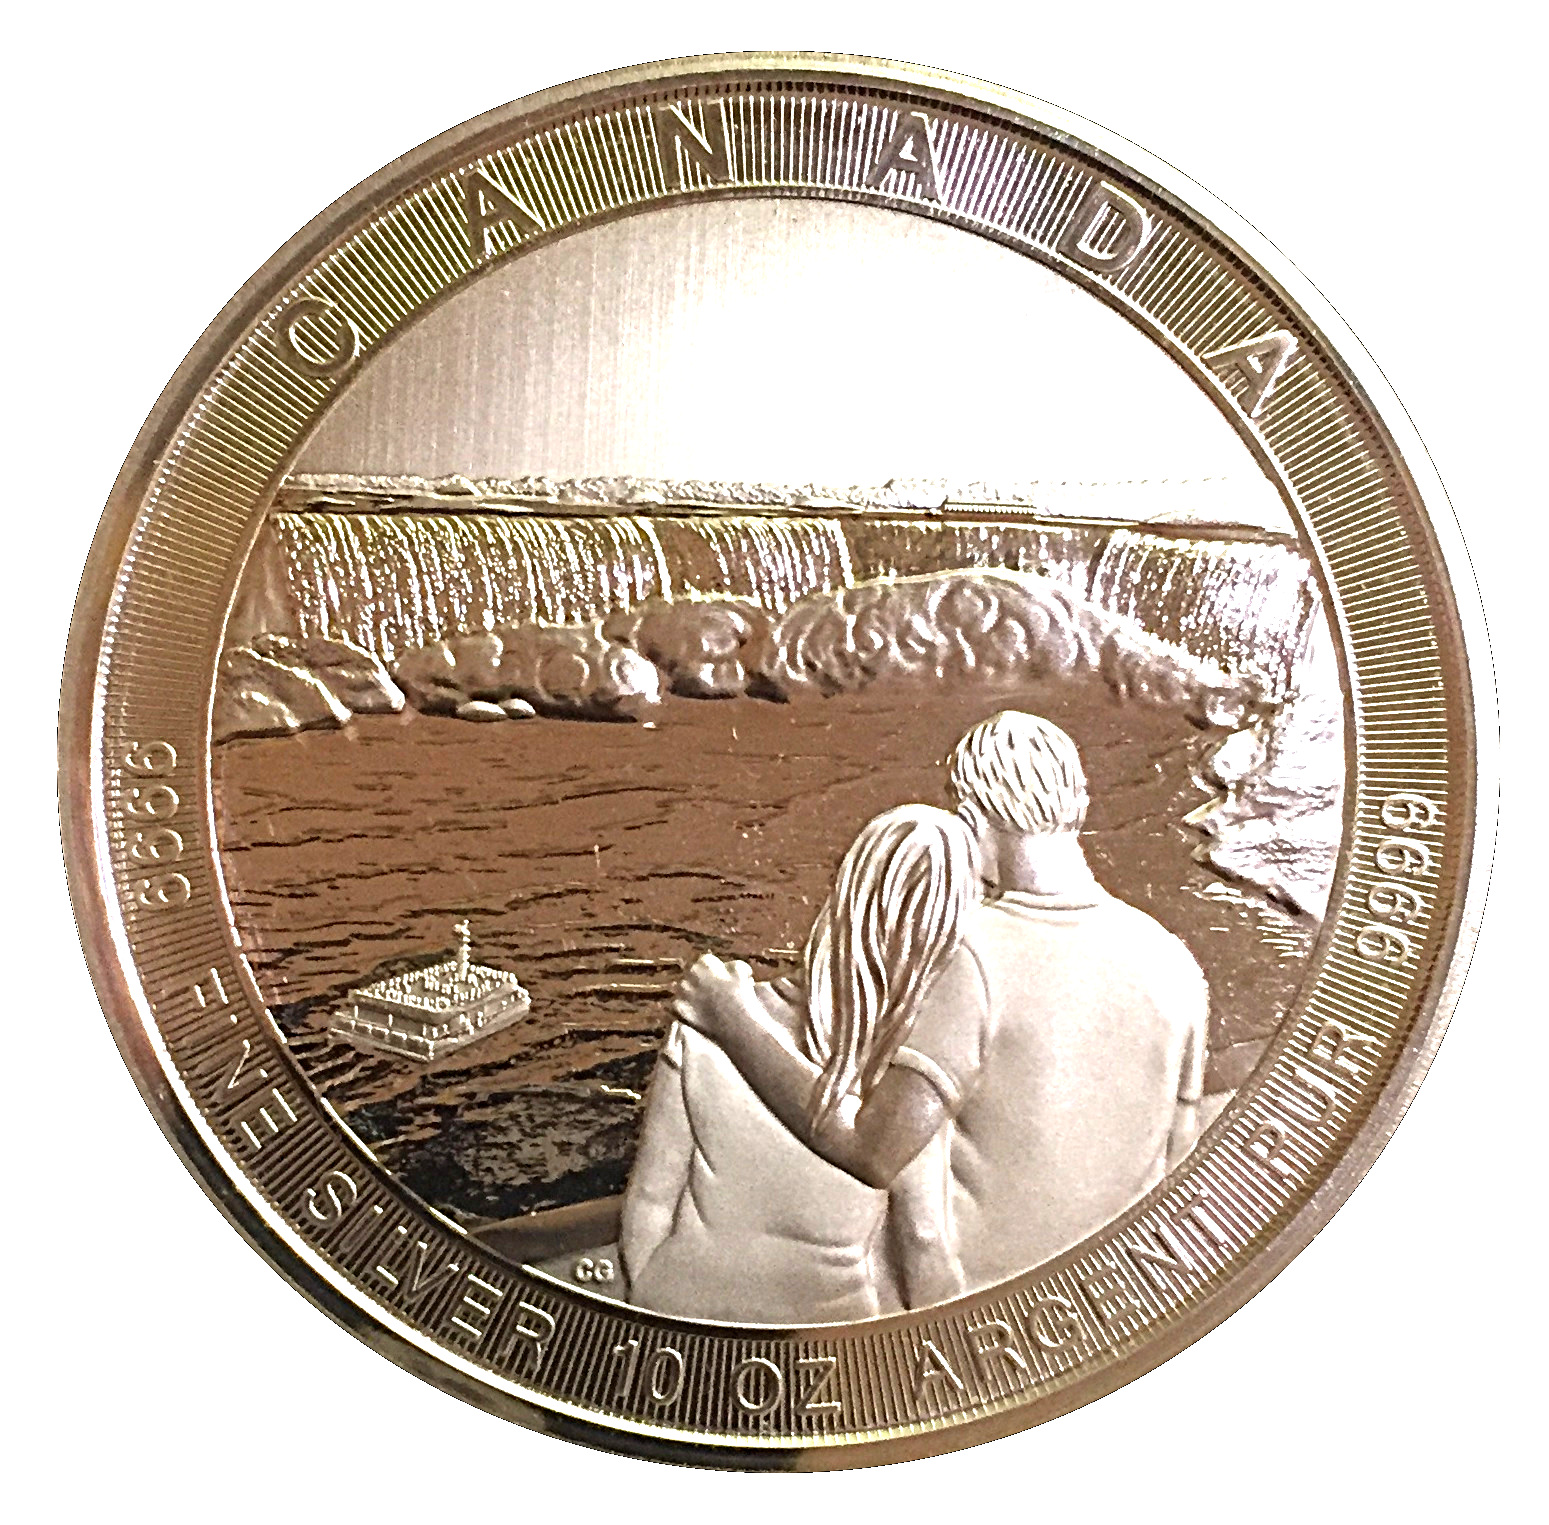 1993-PL Proof-Like Loonie $1 One Dollar /'93 Canada//Canadian Coin Un-Circulated